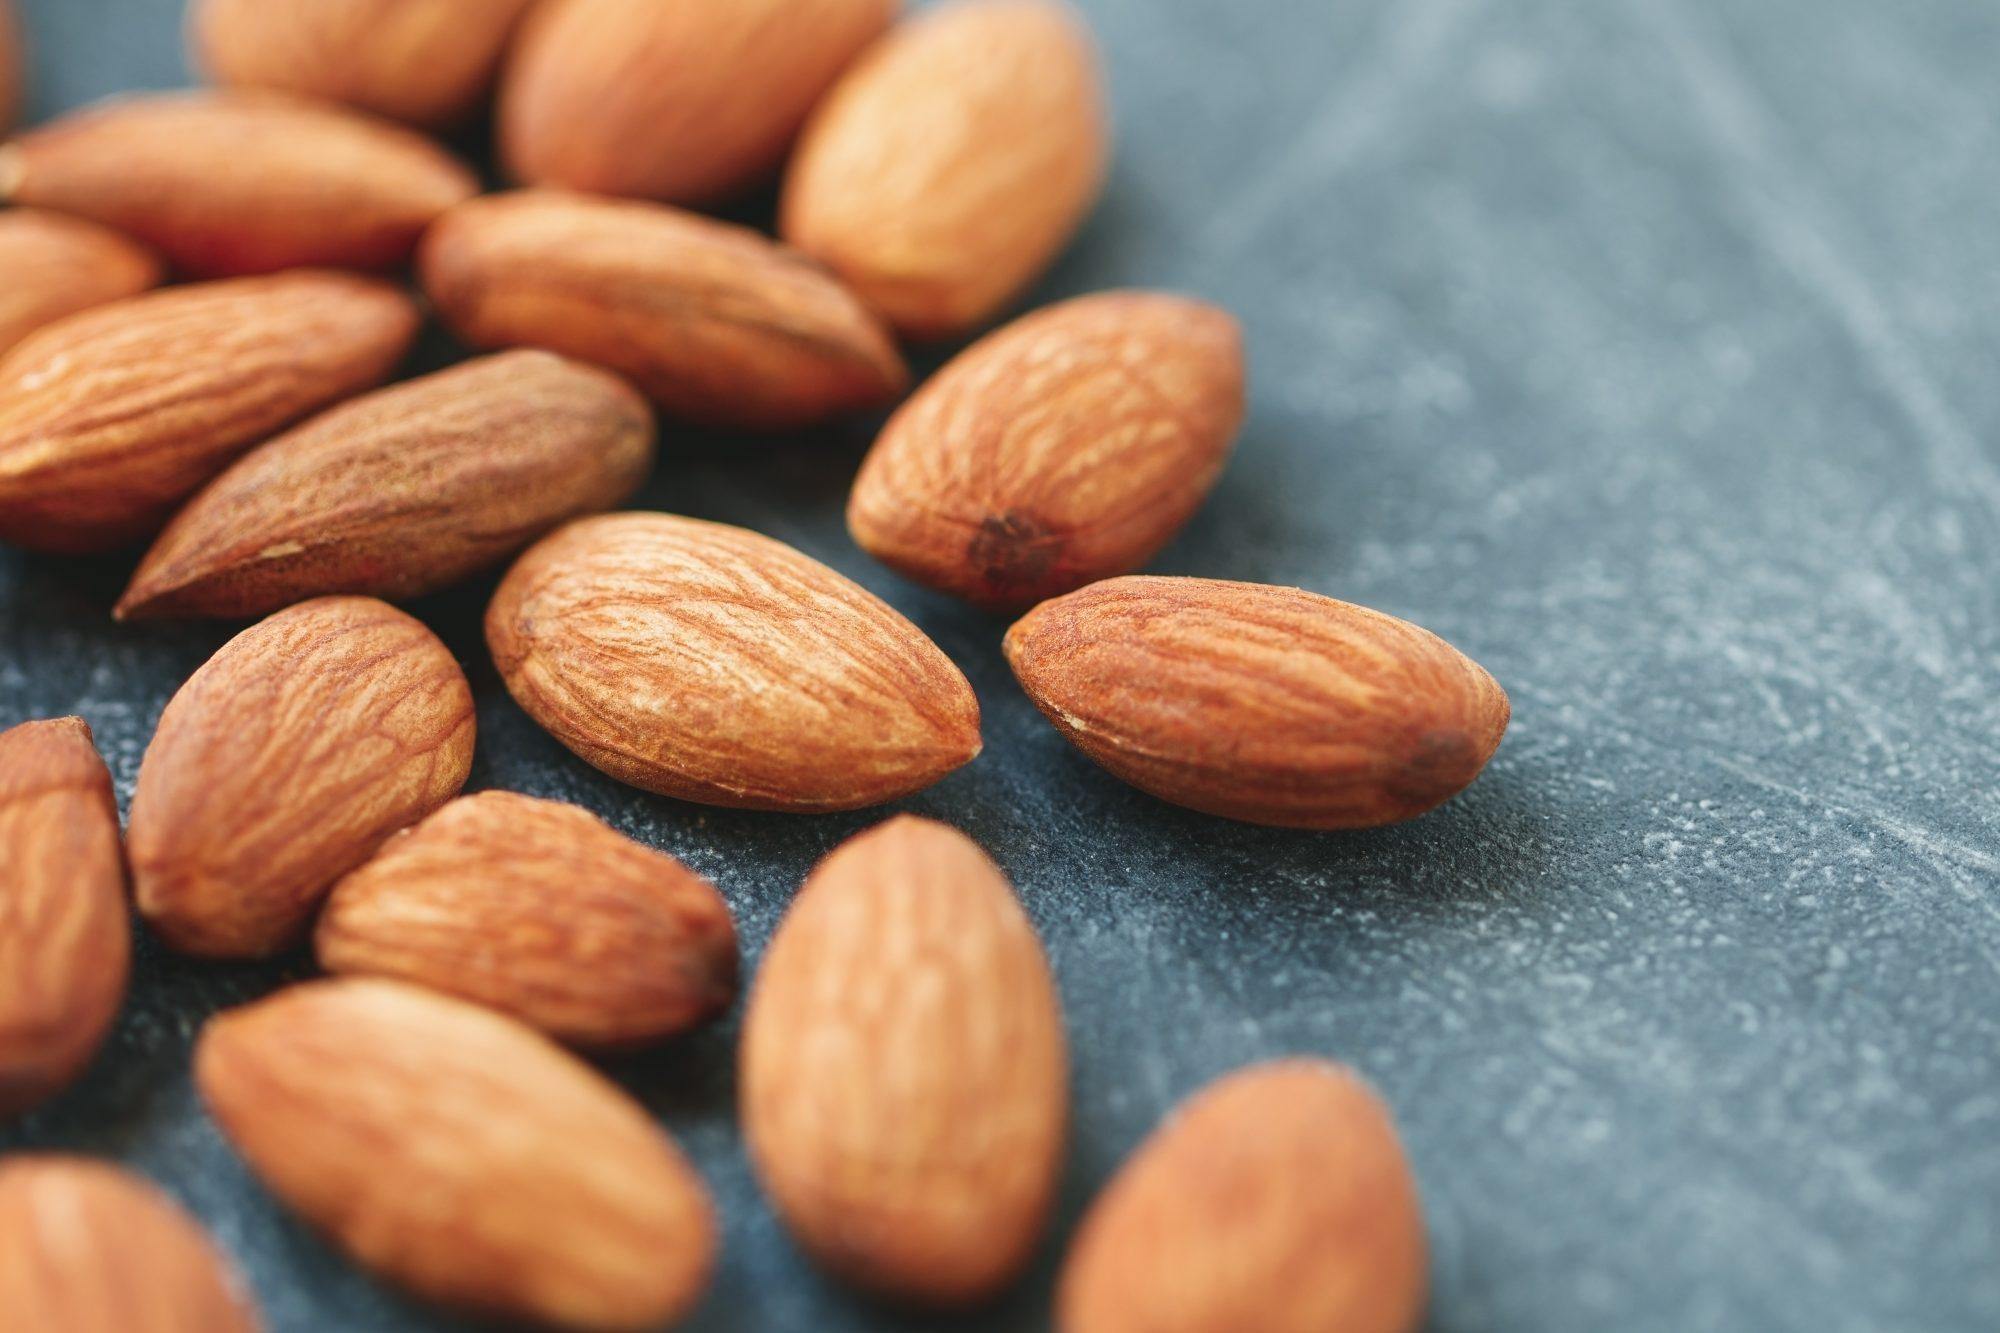 Almonds Getty 1/21/20